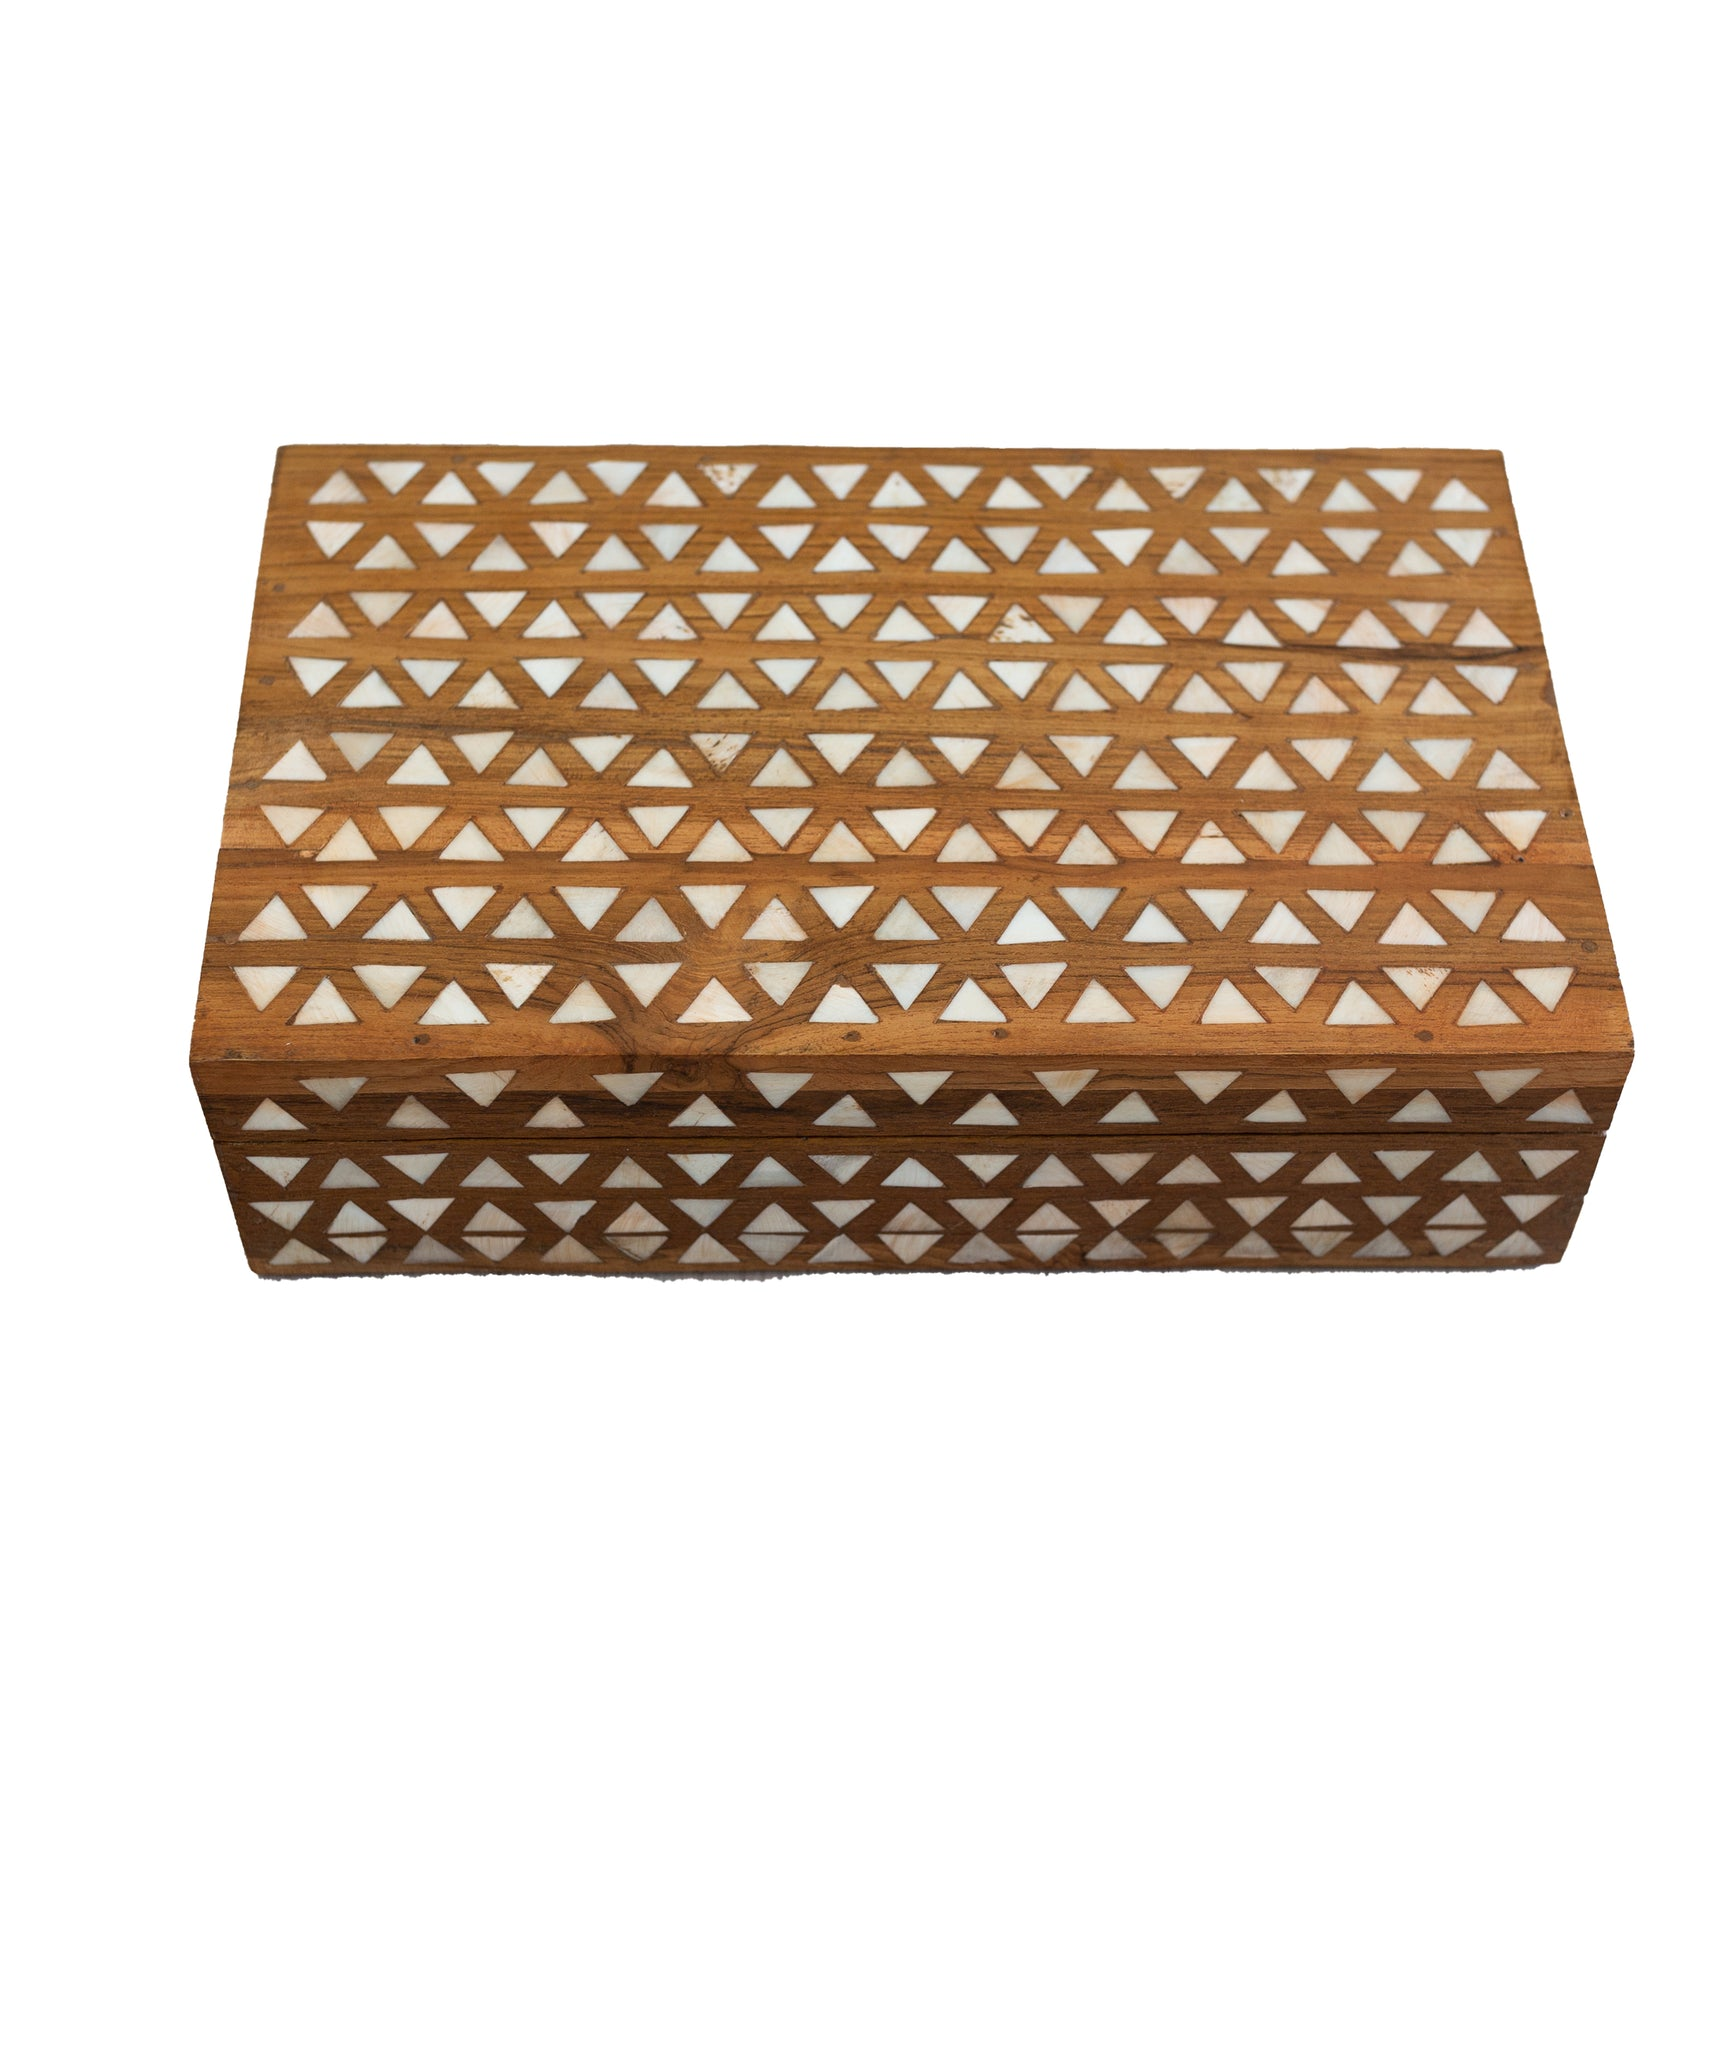 Geometric Wood Box - Amy Berry Home